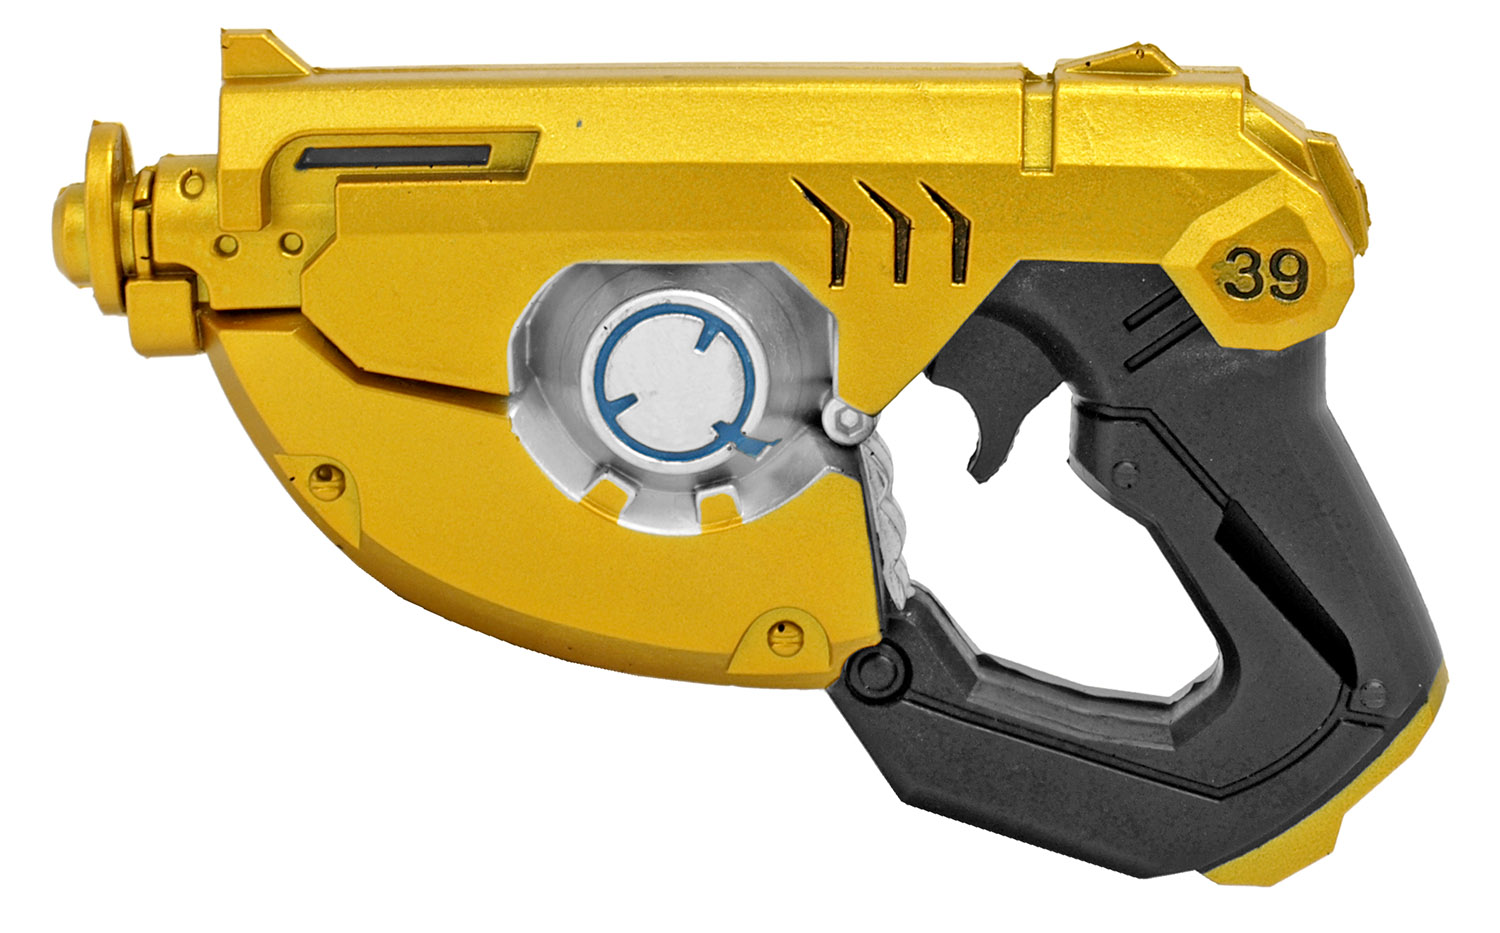 Star Storm Foam Pistol - Golden